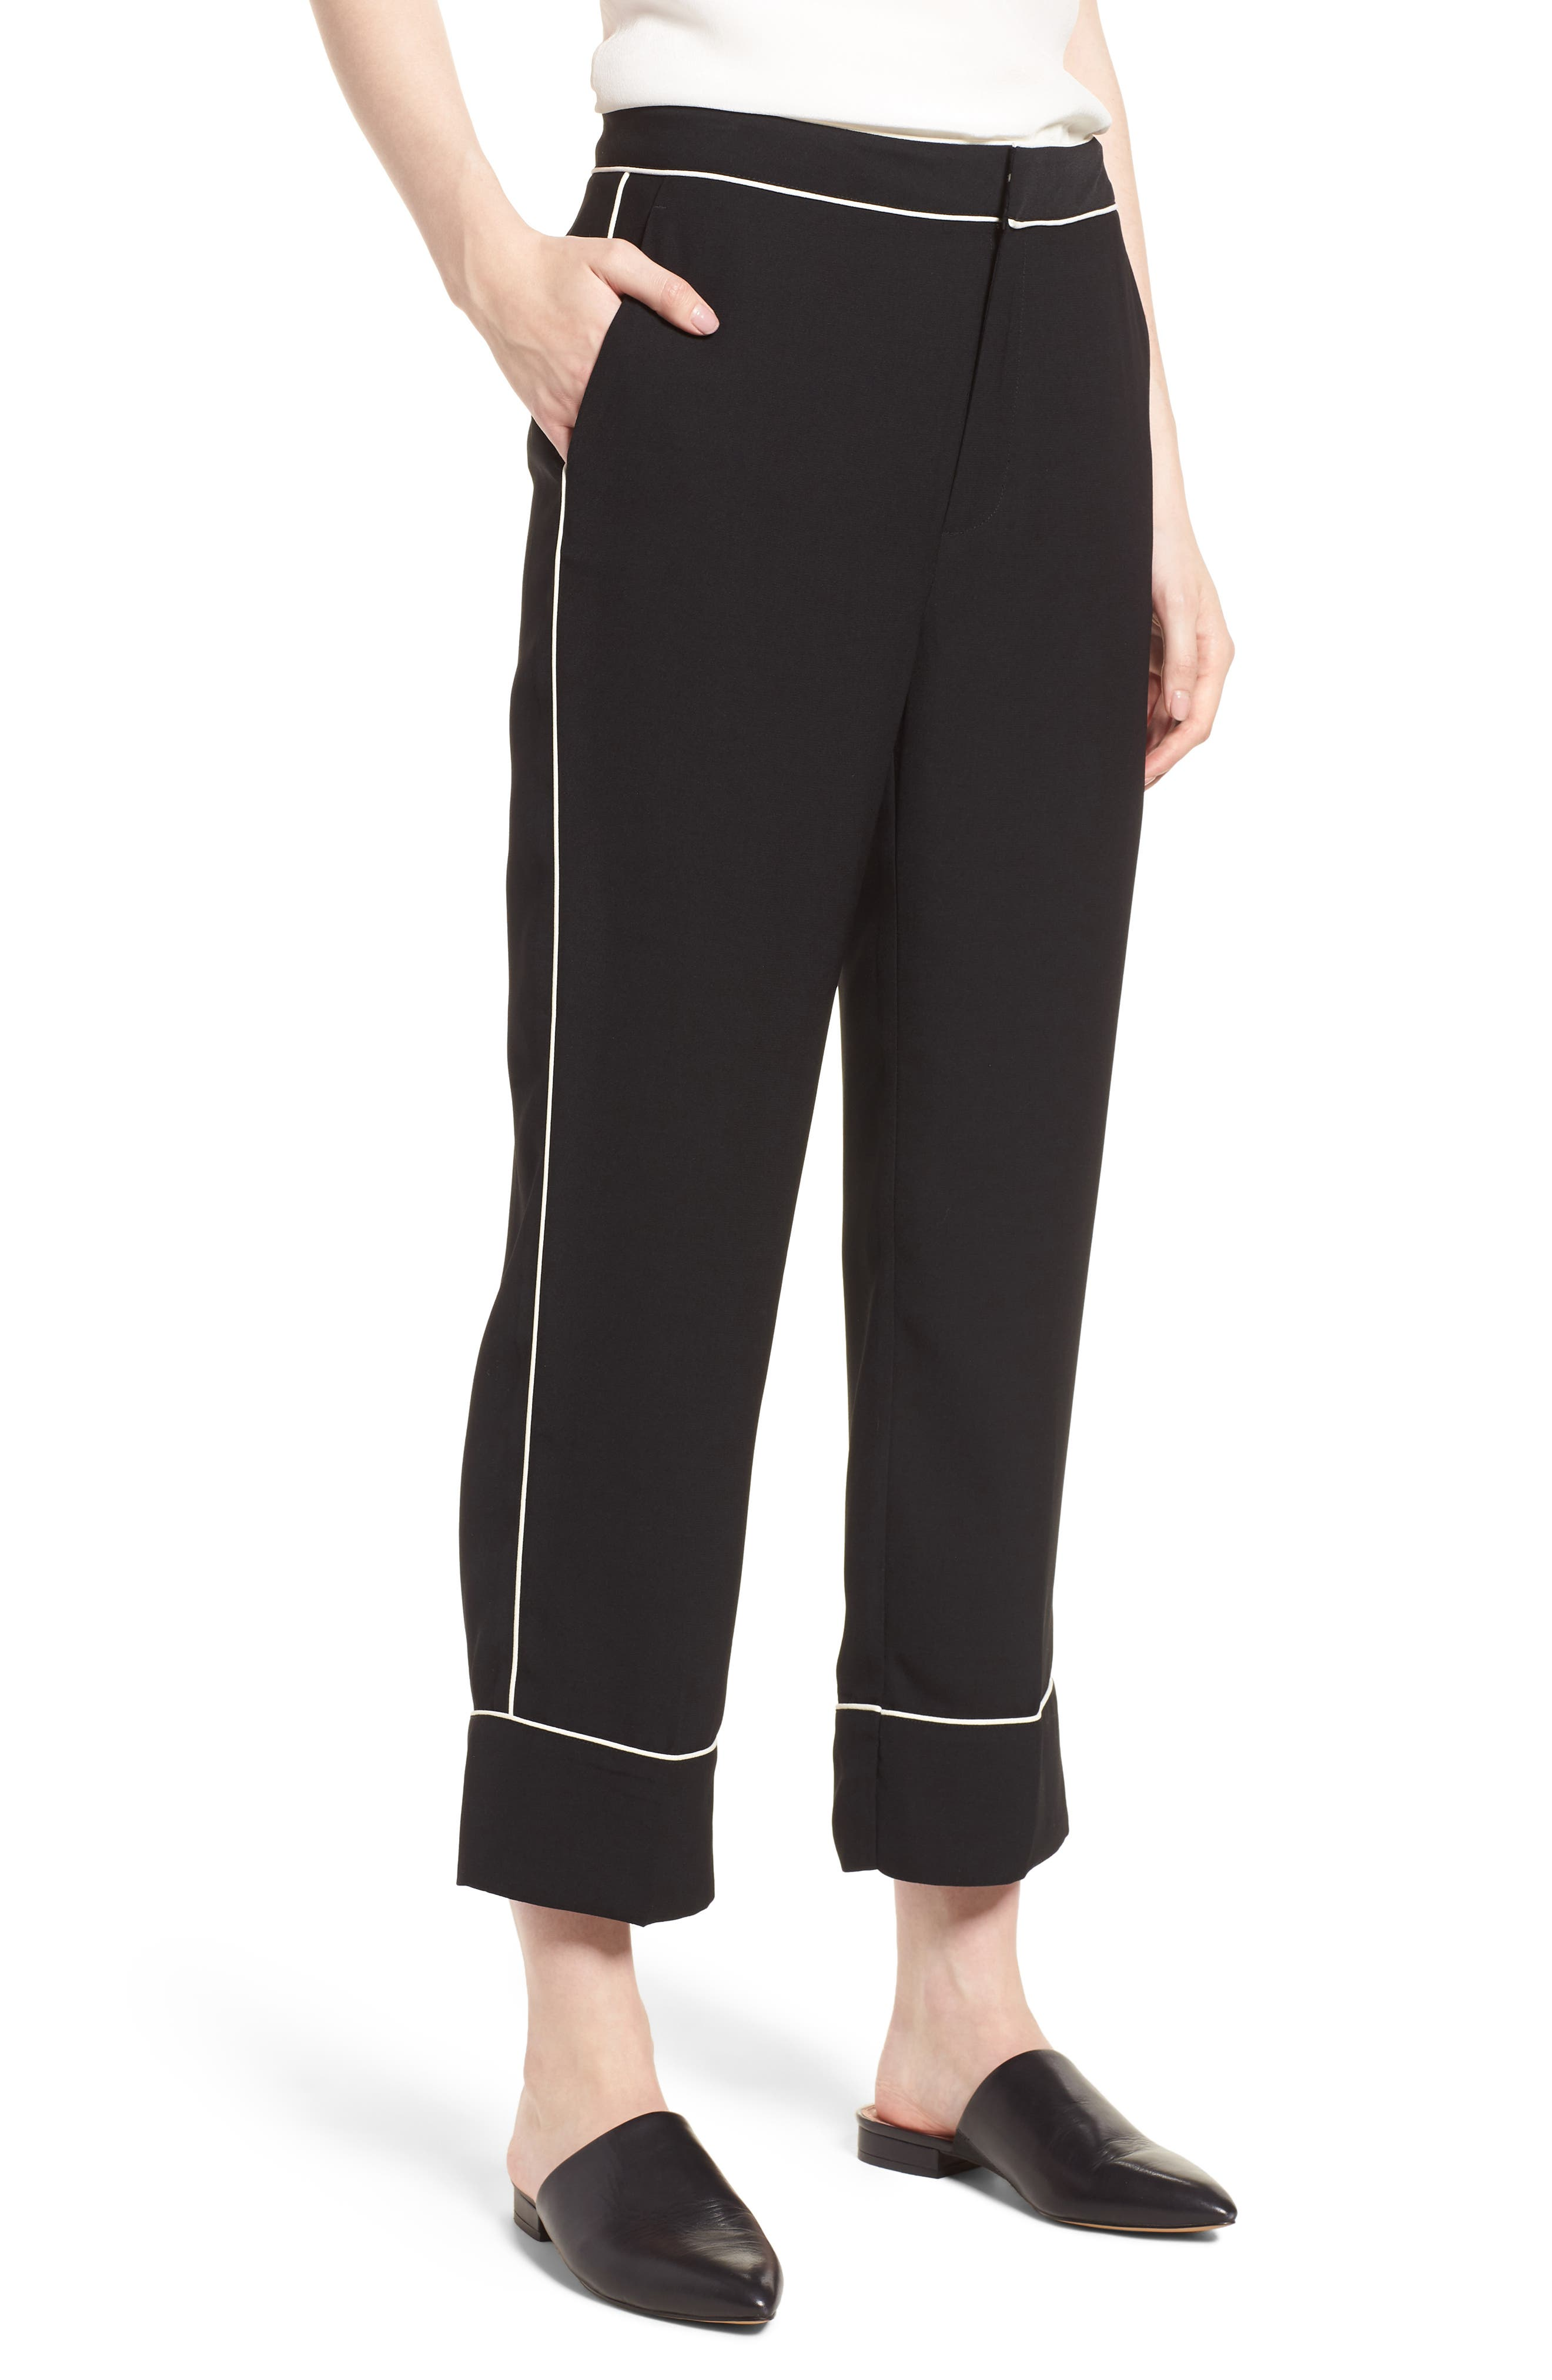 Ankle Pants,                             Main thumbnail 1, color,                             Black/ Bright White Piping